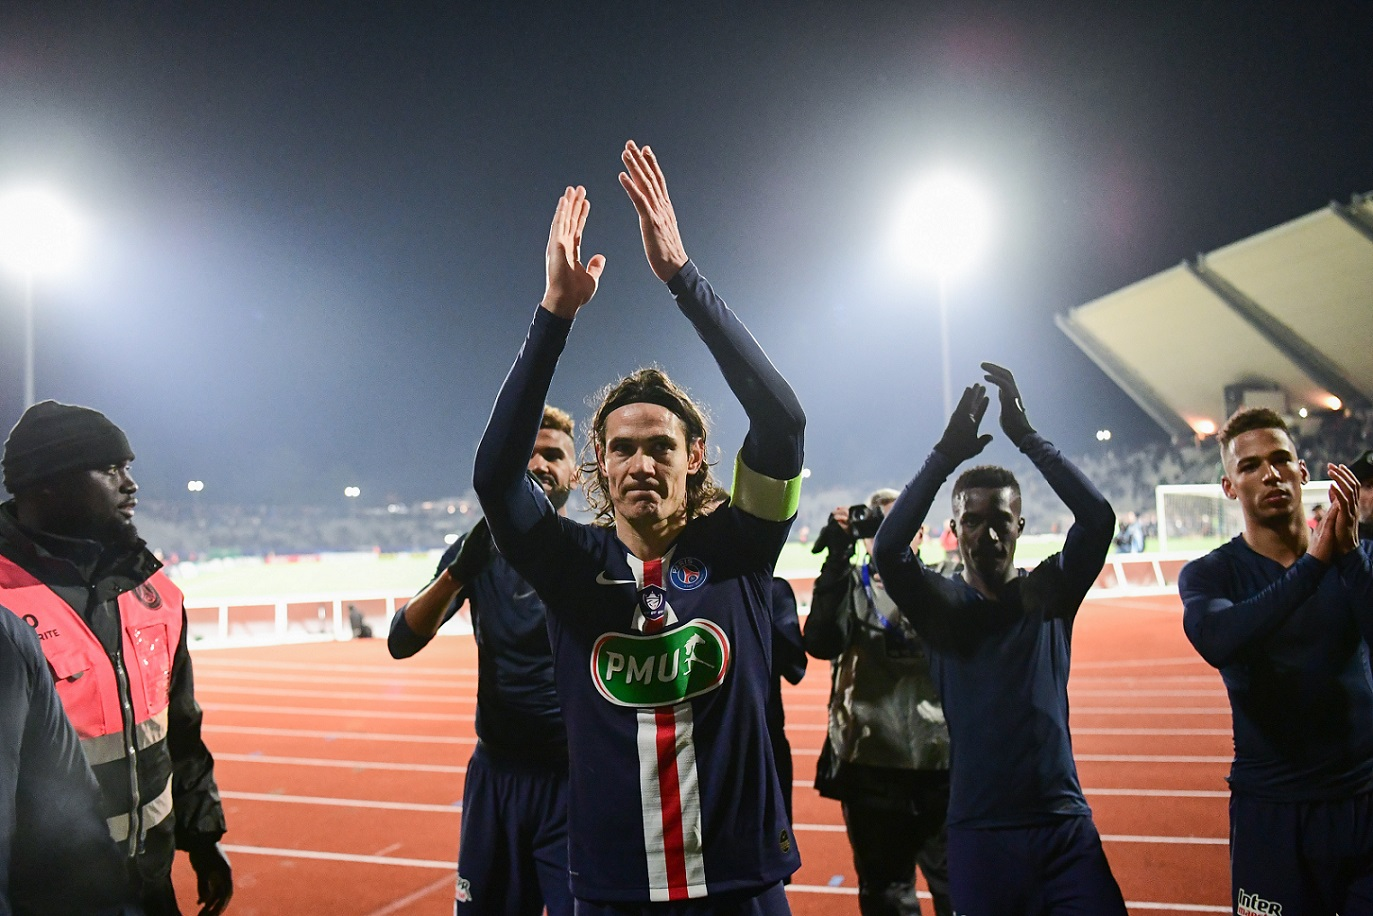 Mercato - Cavani n'ira pas à l'Atlético de Madrid et l'AS Rome avance selon AS